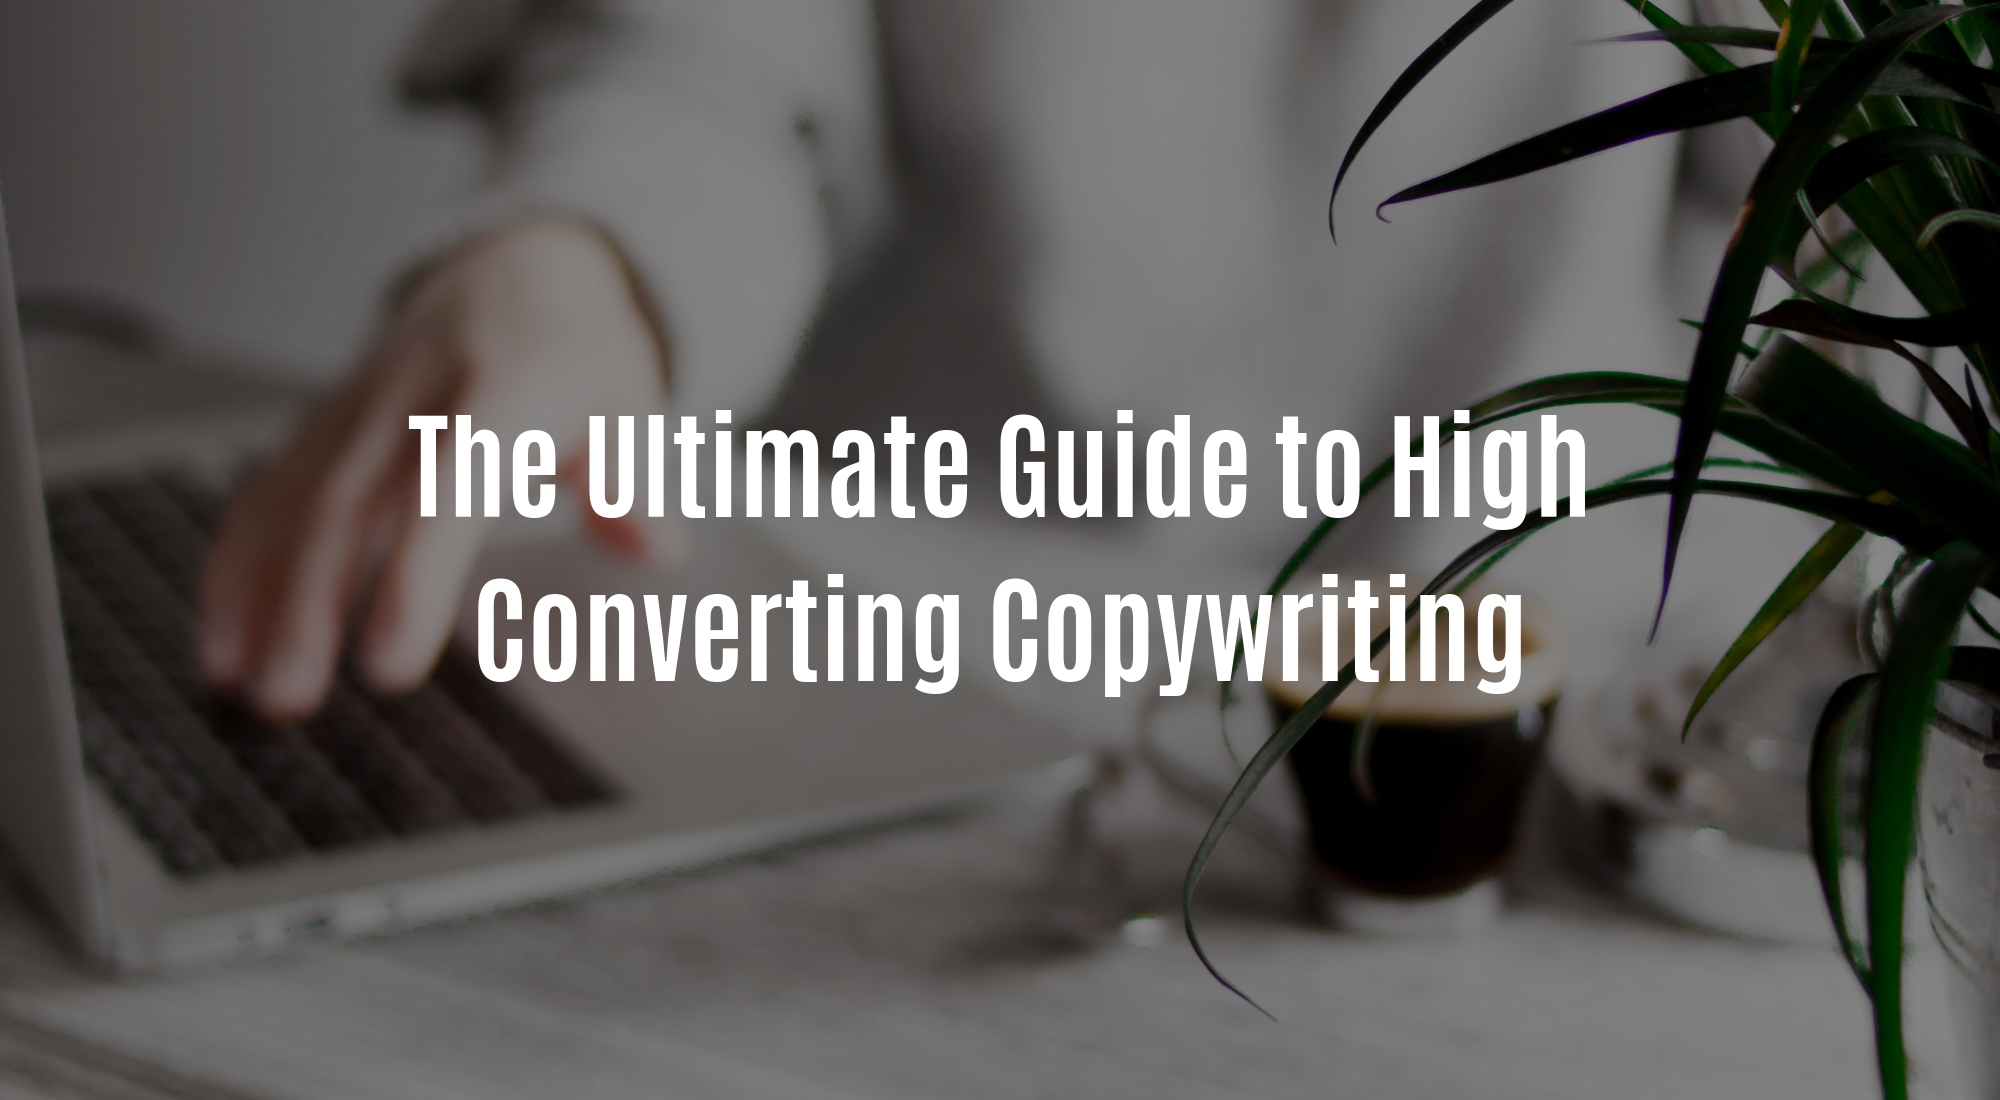 The Ultimate Guide to High Converting Copywriting.jpg